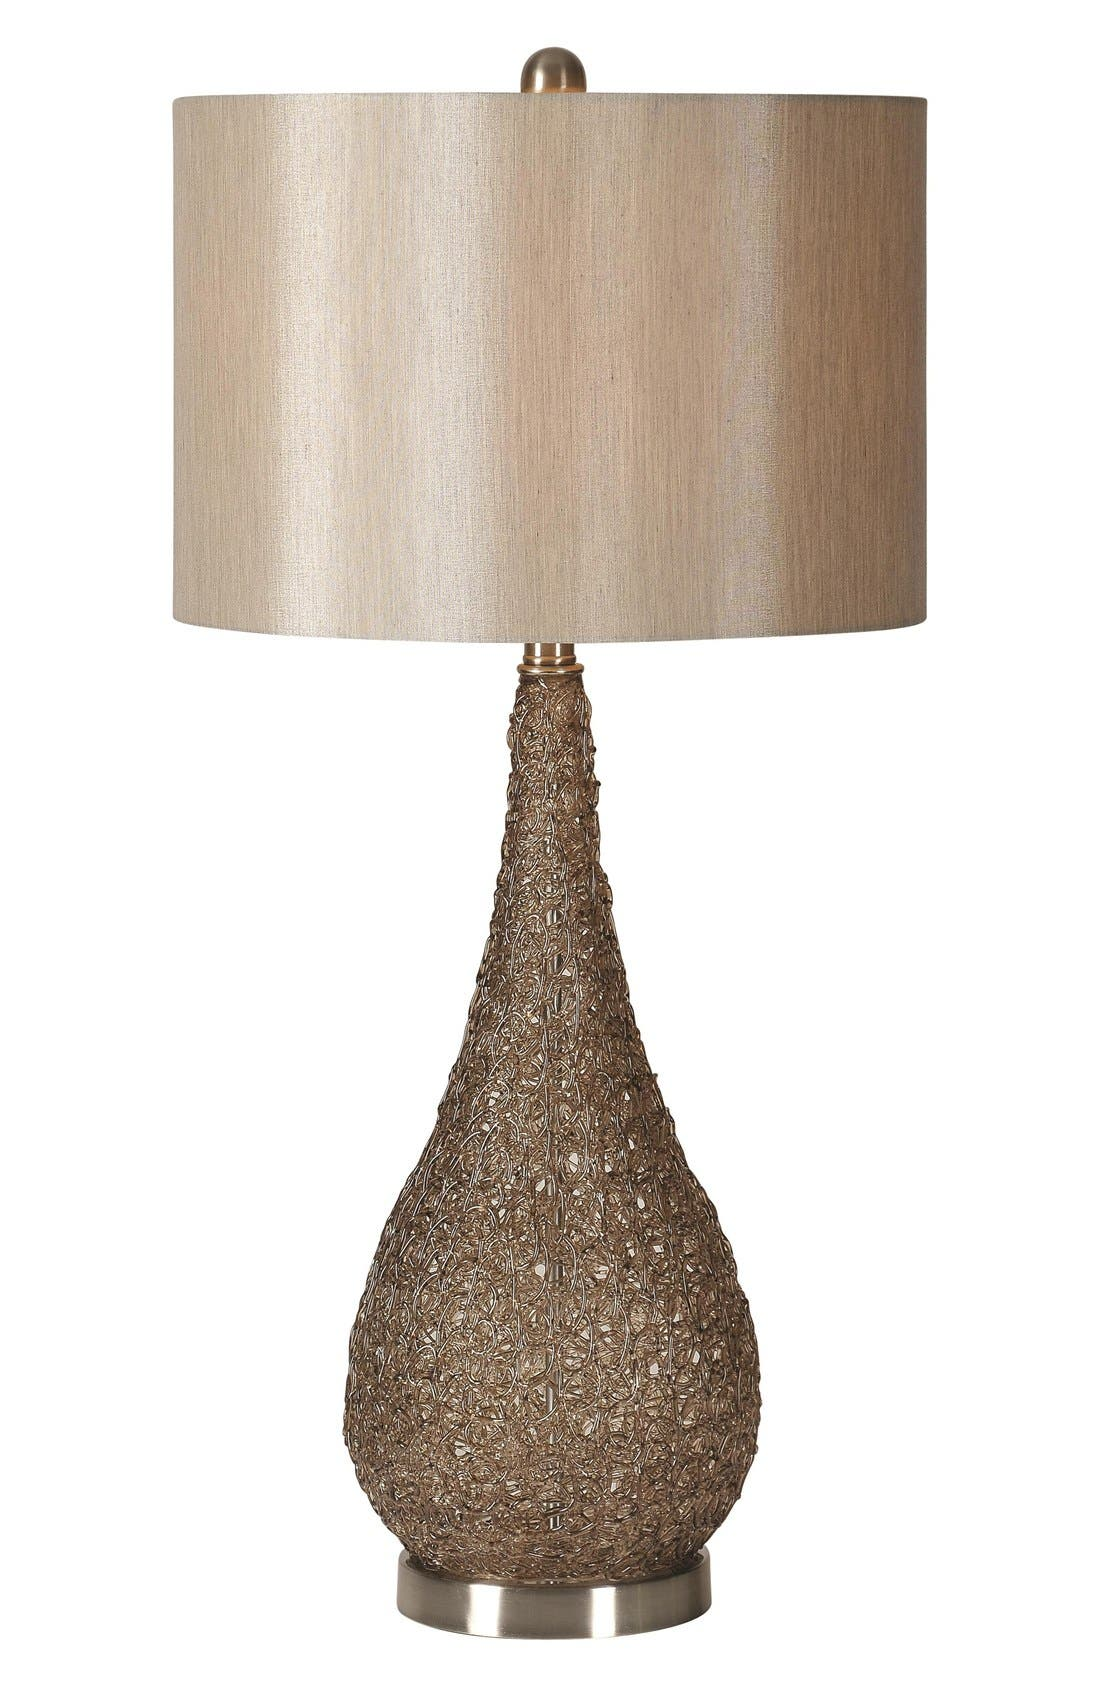 Main Image - Renwil'Sydney' Table Lamp